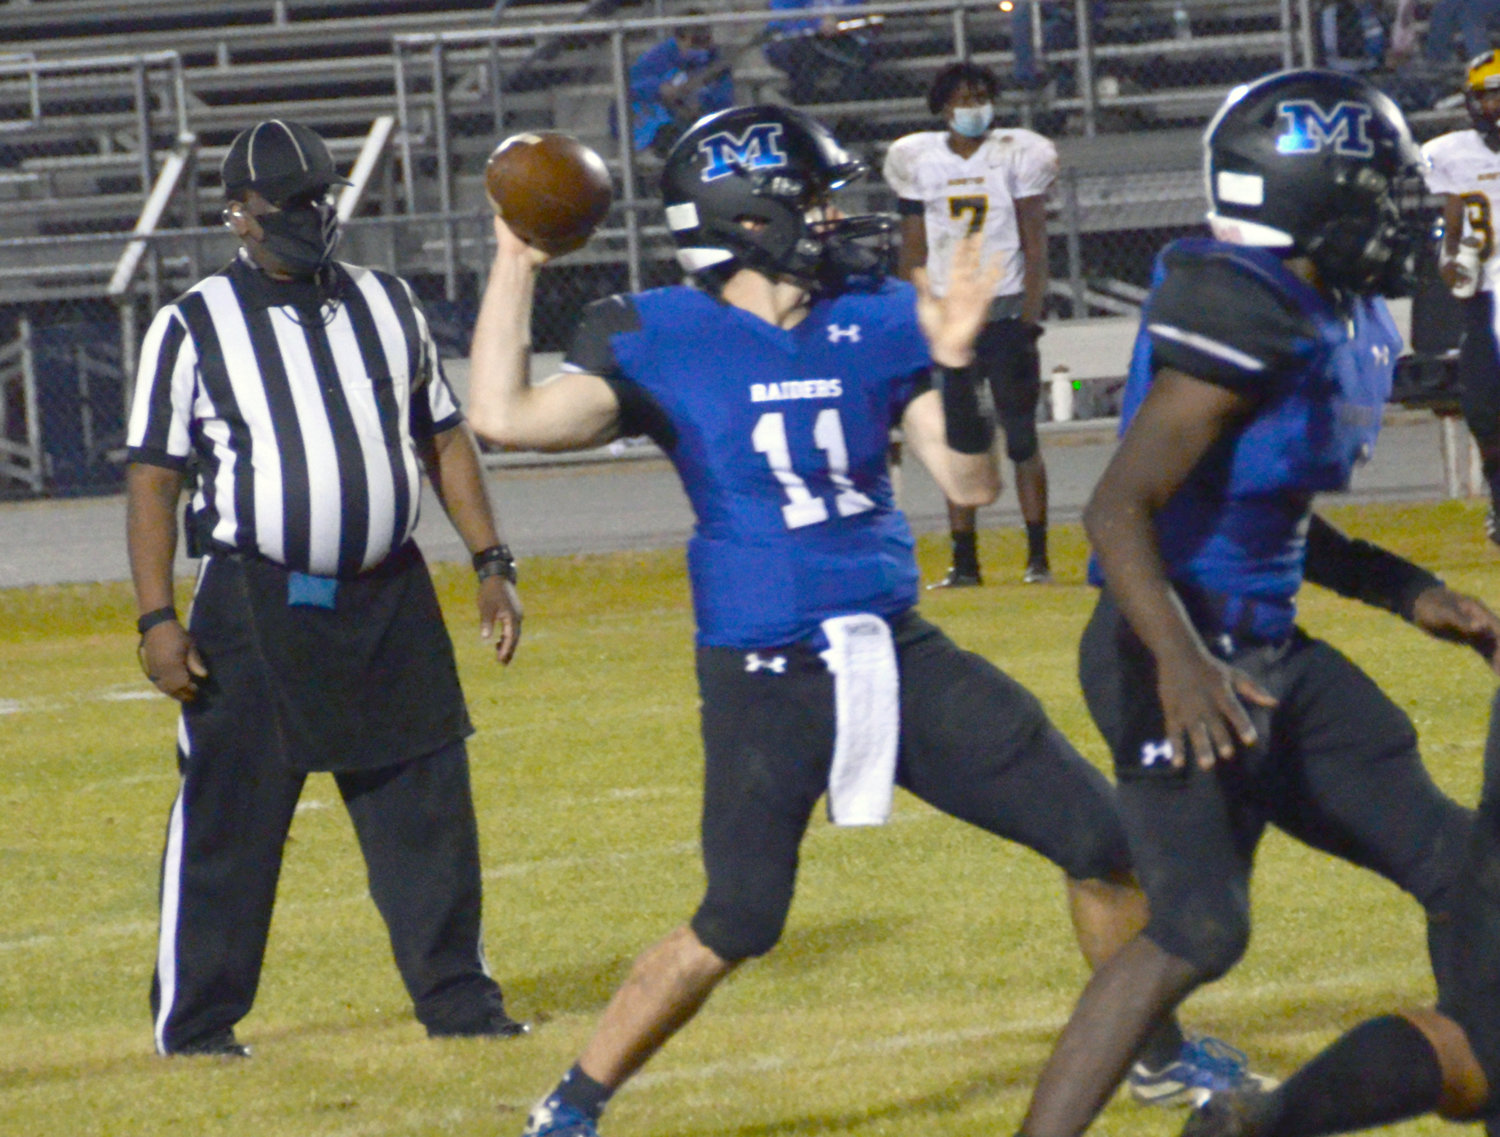 Wyatt Holland (11) totaled a career-high 300 yards passing to help Midway down rival Hobbton during last Thursday's opener in Spivey's Corner.